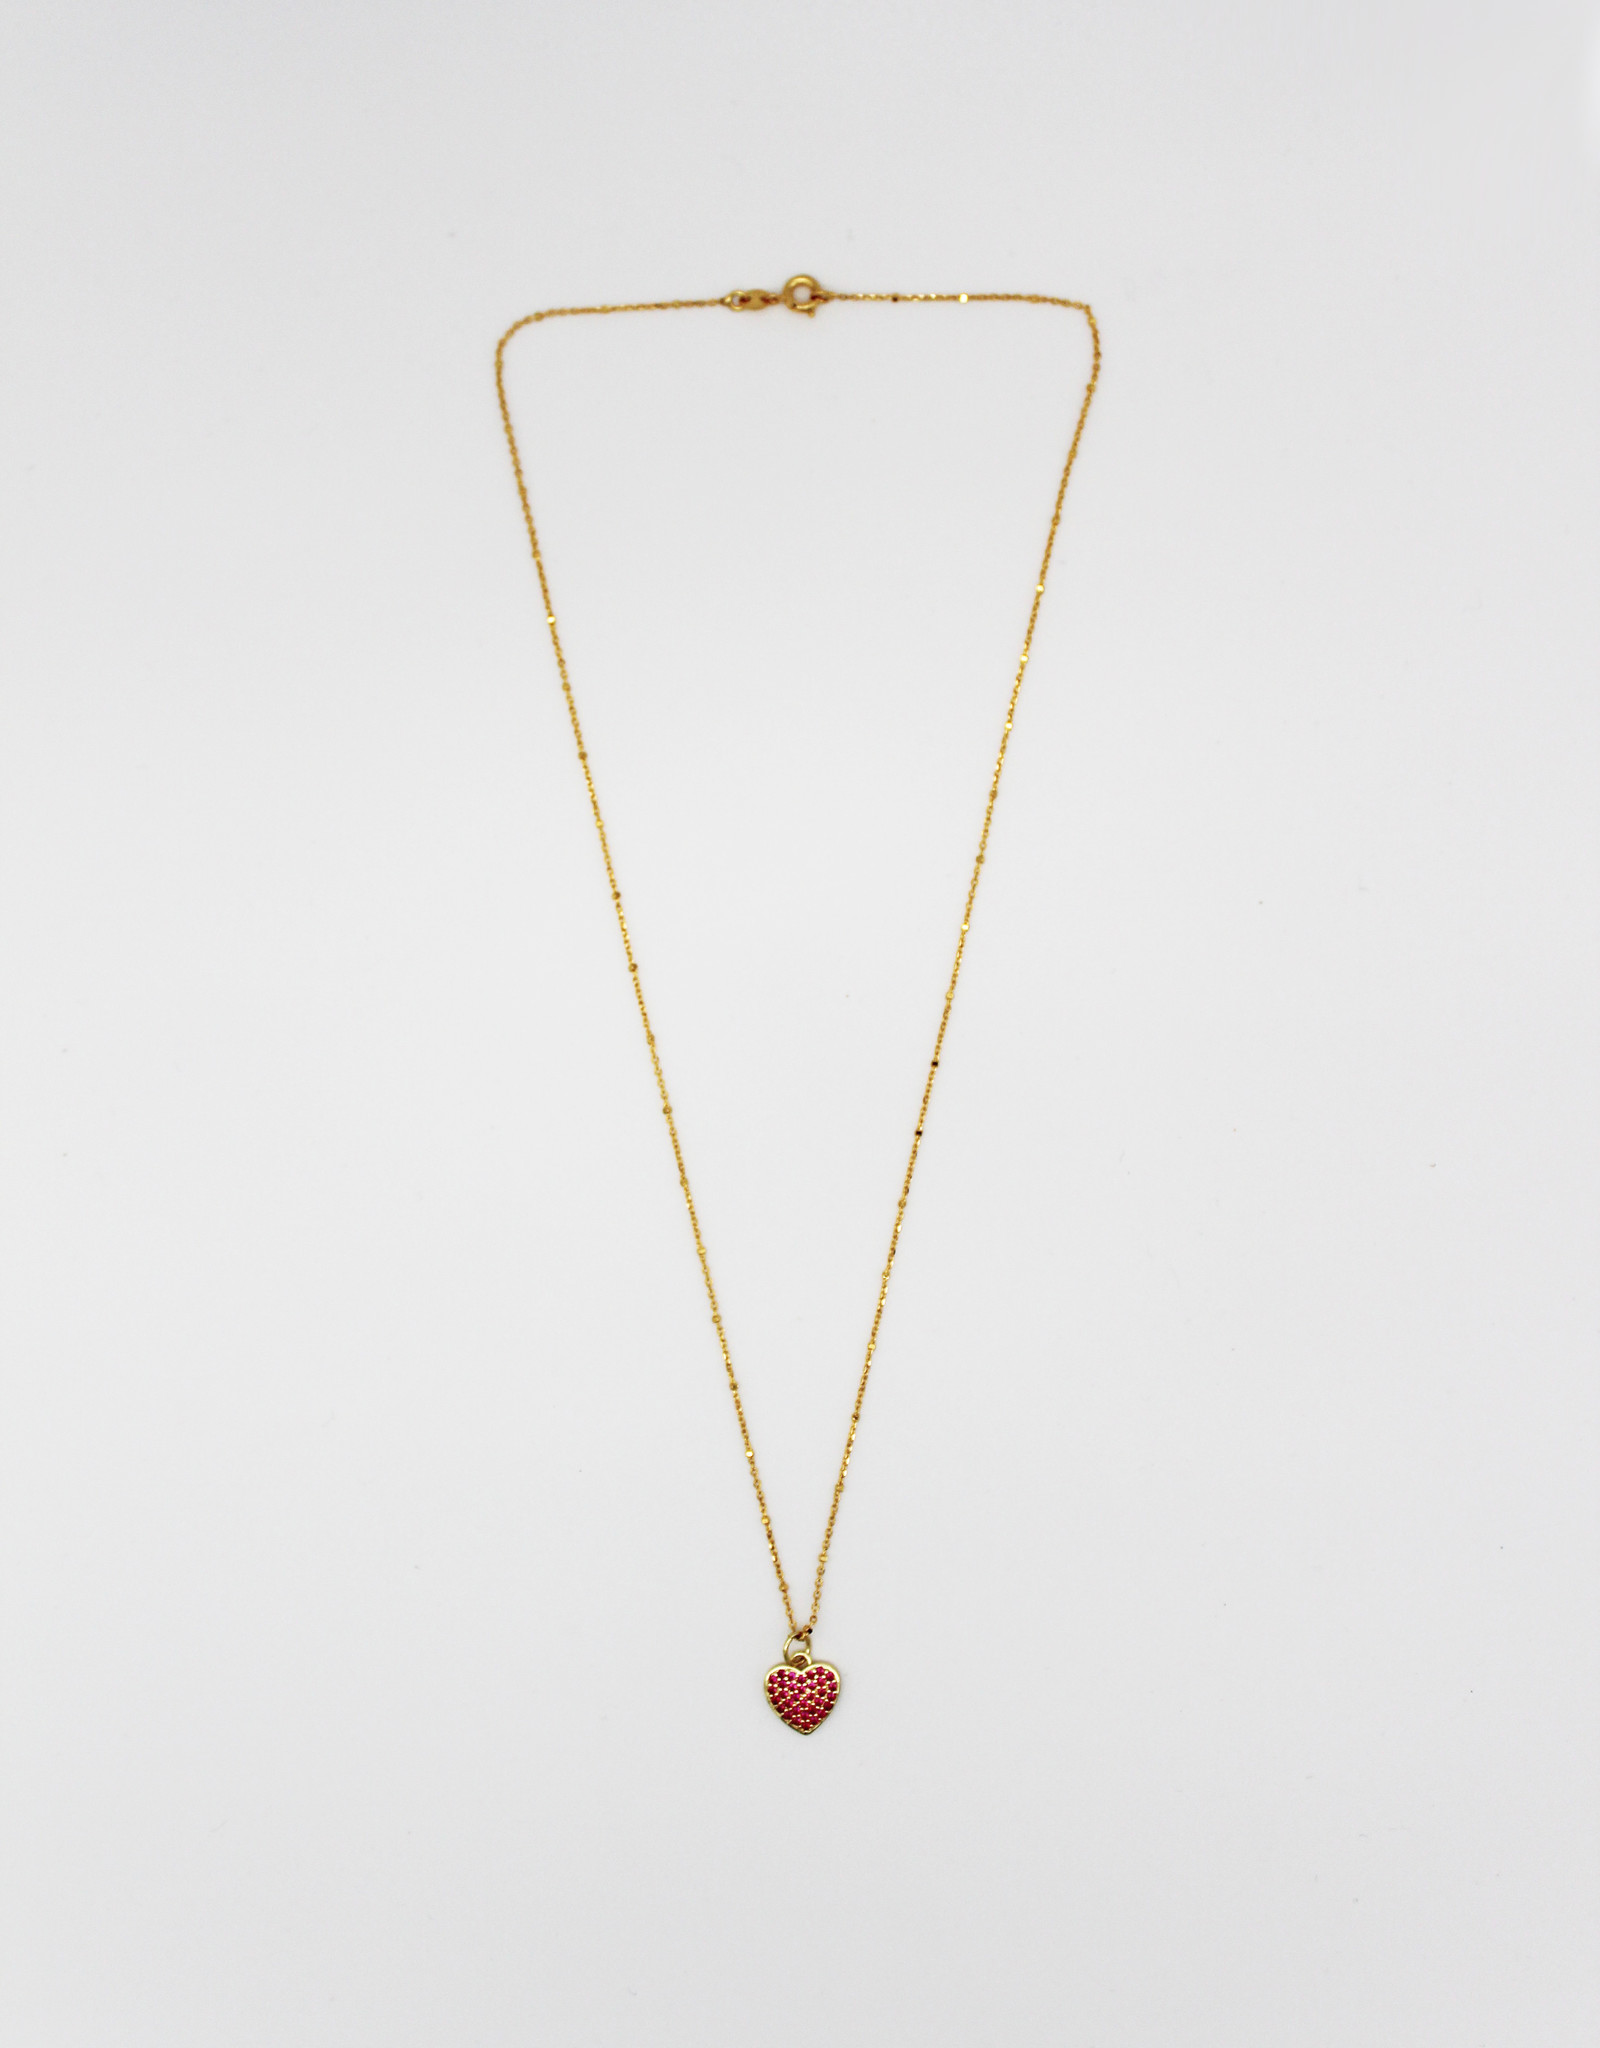 Madison Richey MR1 Gold Filled Pink Heart Necklace